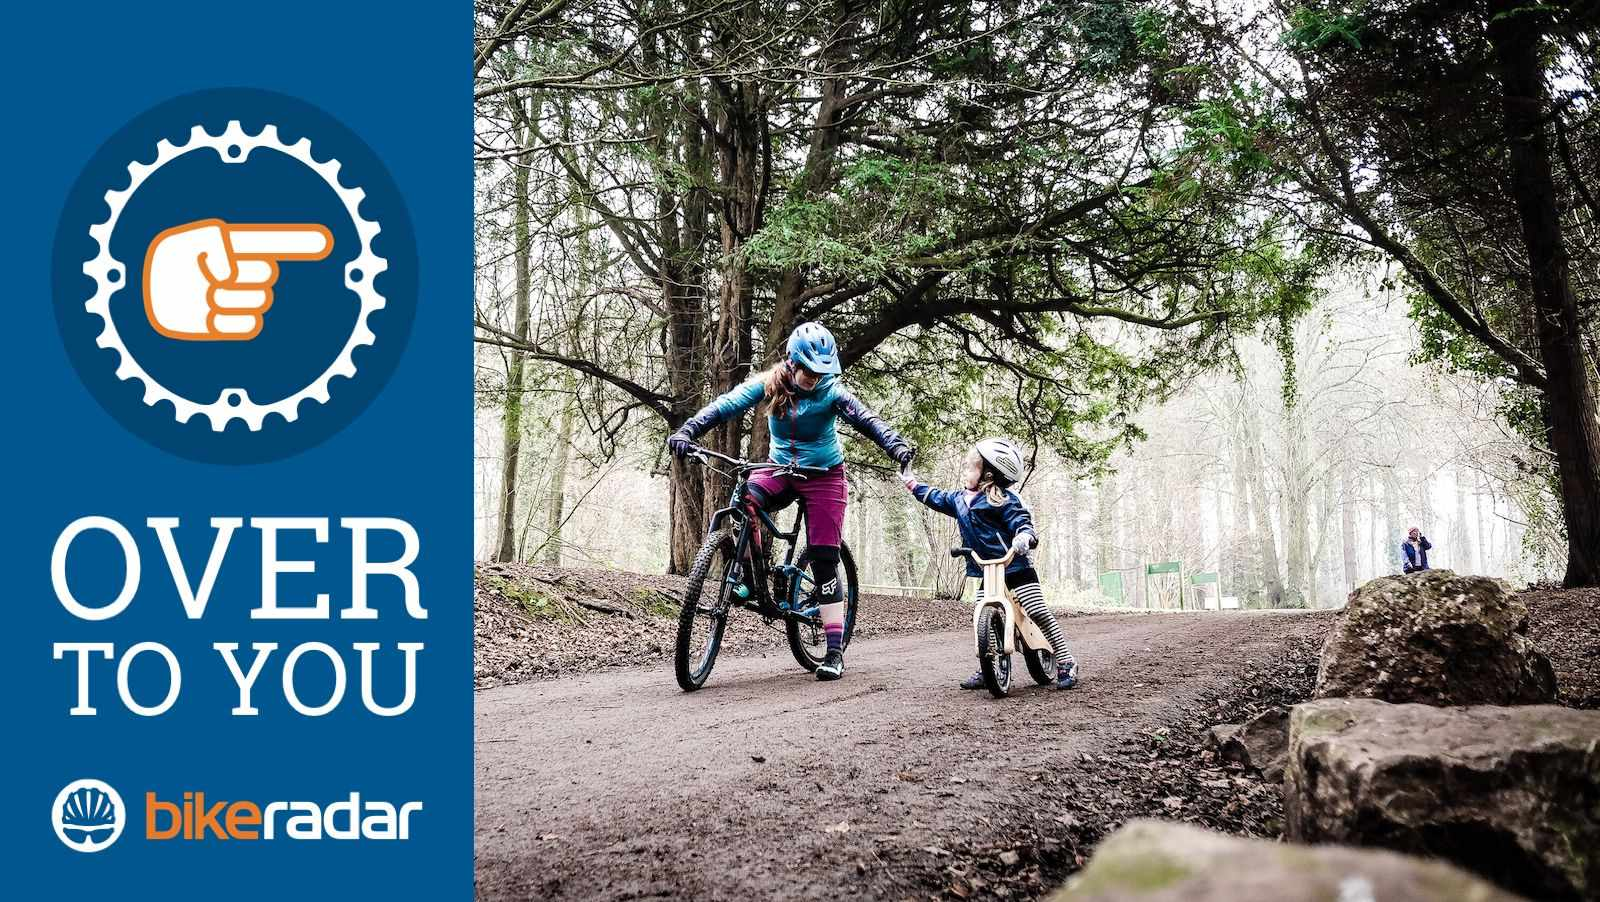 Who will you get into cycling?